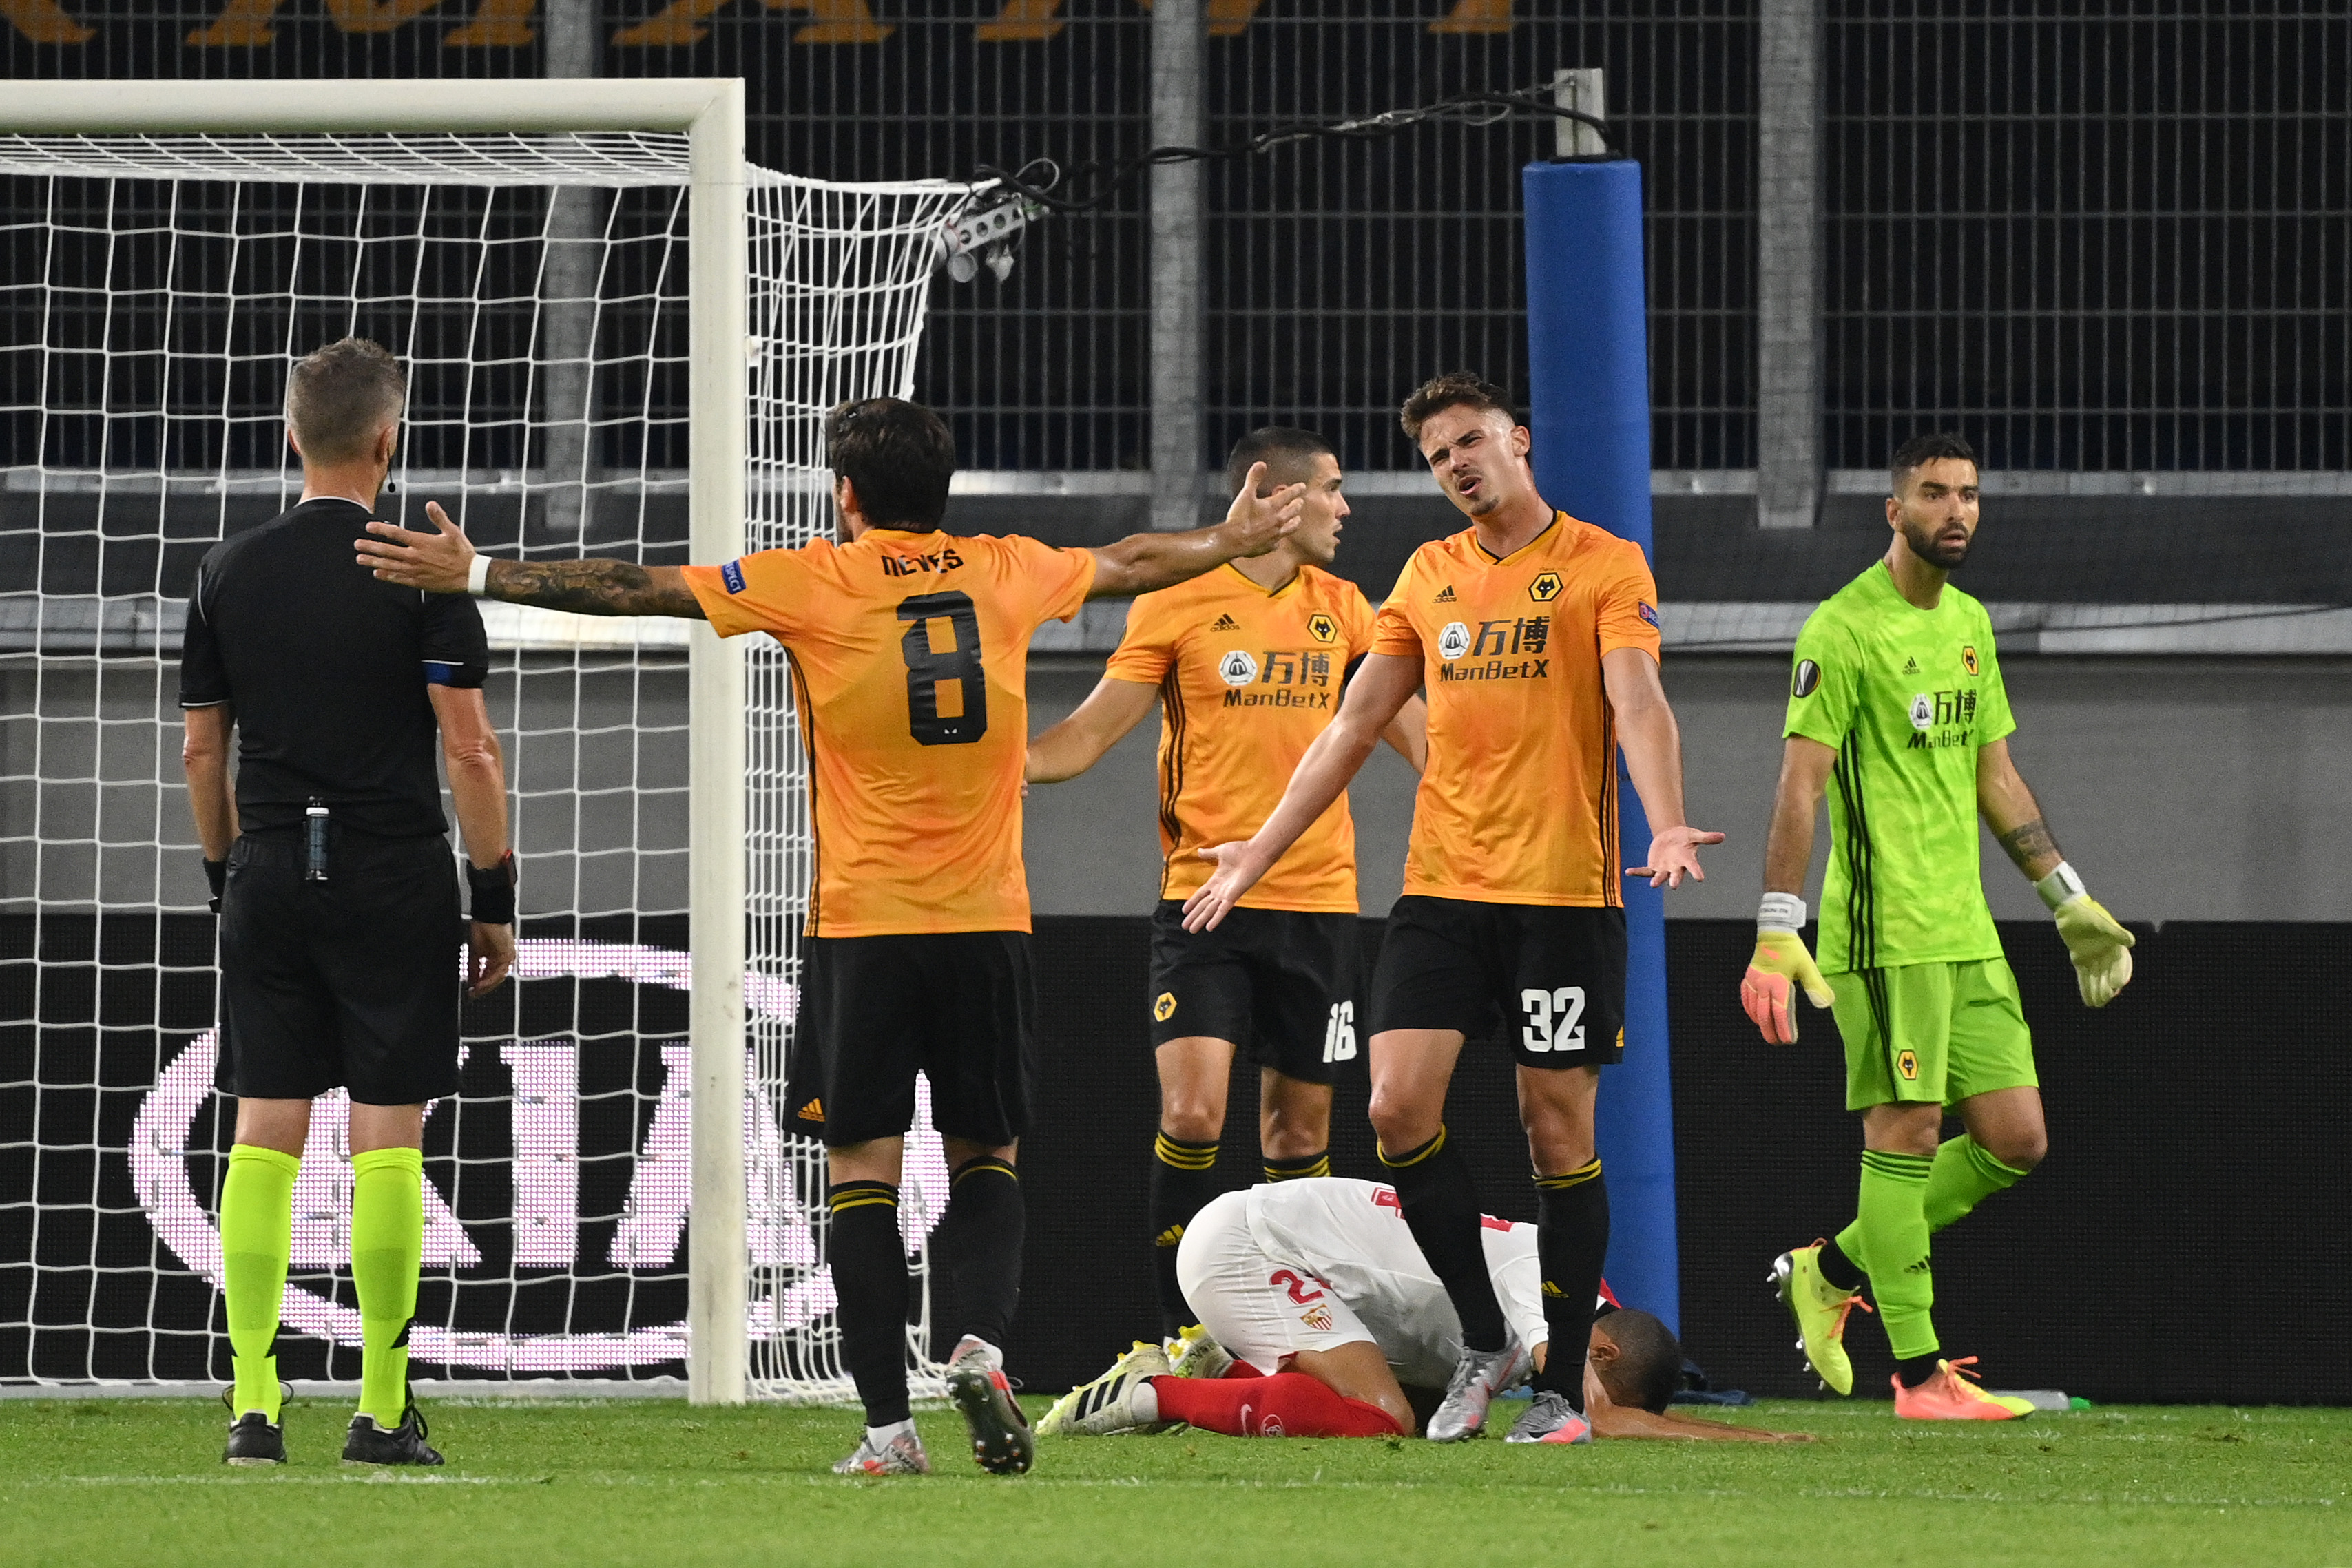 3-4-1-2 Wolves Predicted Lineup Vs Newcastle United (Wolves players are in action in the picture)